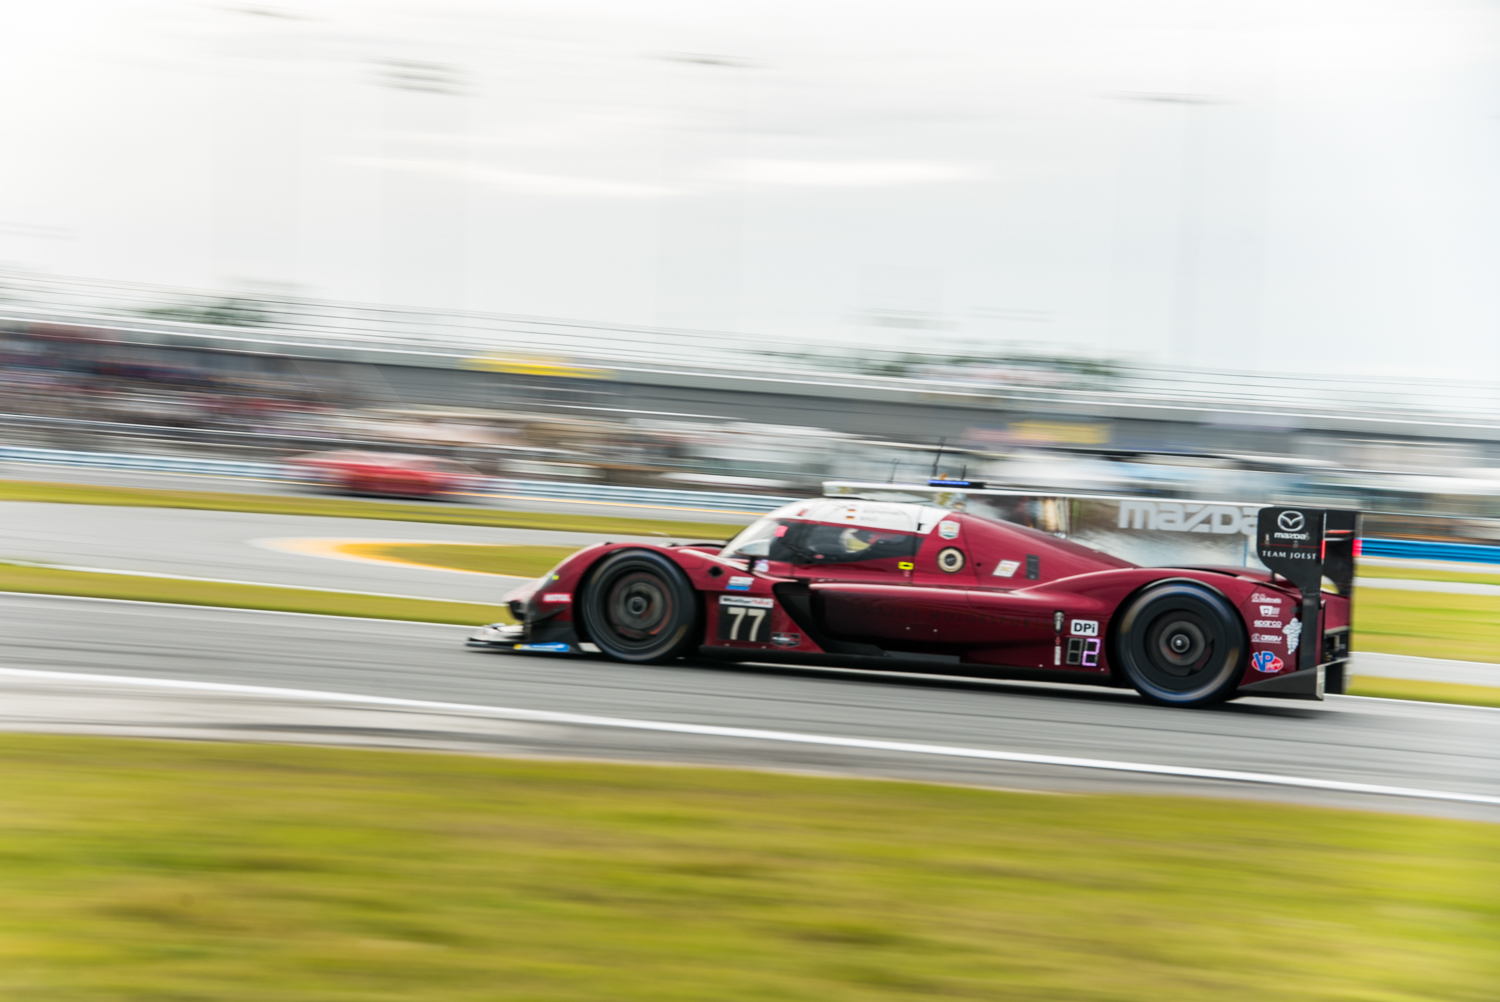 Oliver Jones broke the Daytona road course track record during qualifying in this Mazda DPi. The previous record was set by P.J. Jones way back in 1993. Both Mazda teams were plagued with mechanical issues about halfway through.